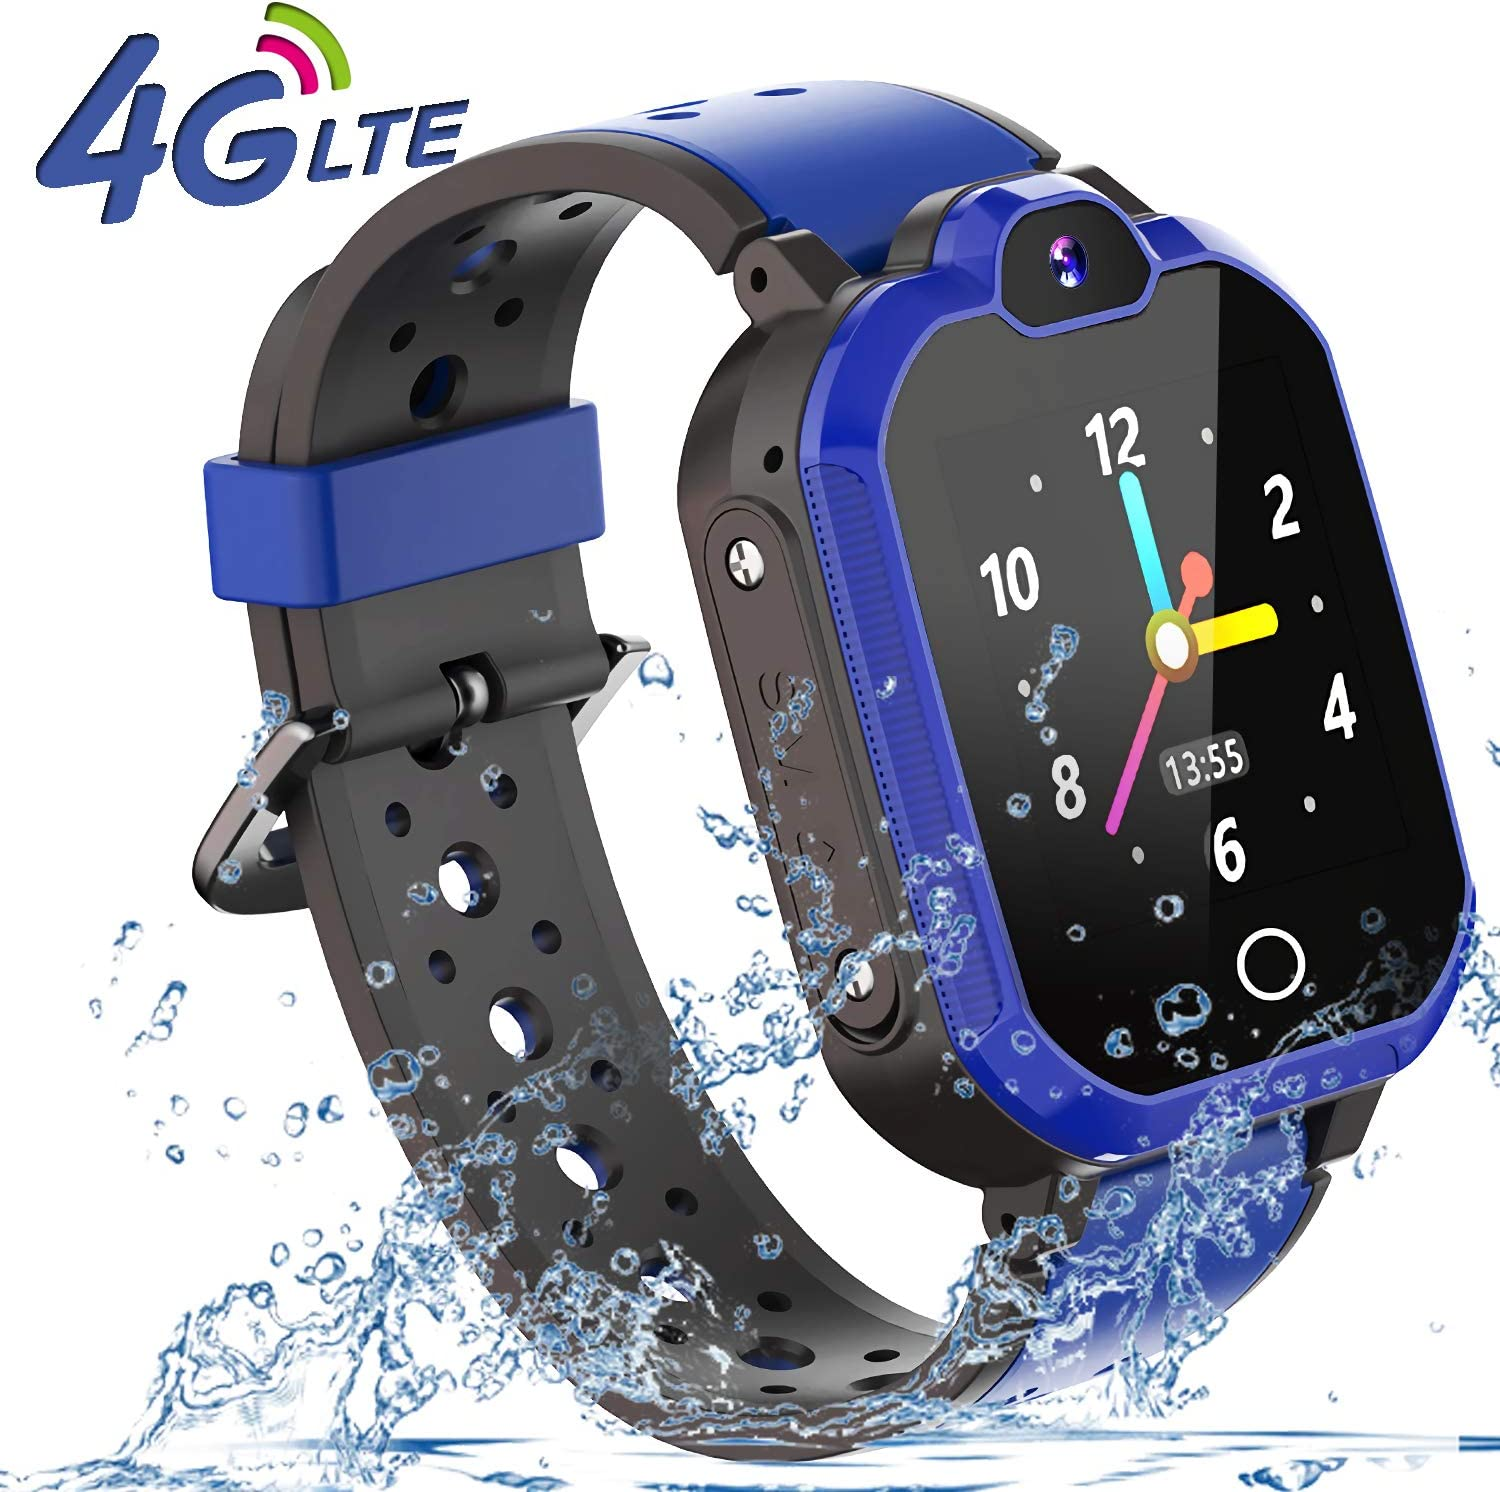 4G Smart Watch for Kids - WiFi GPS Tracker Kids Smartwatch Phone Waterproof Touch Screen Digital Wrist Watch with Call Voice Video Chat Pedometer ...